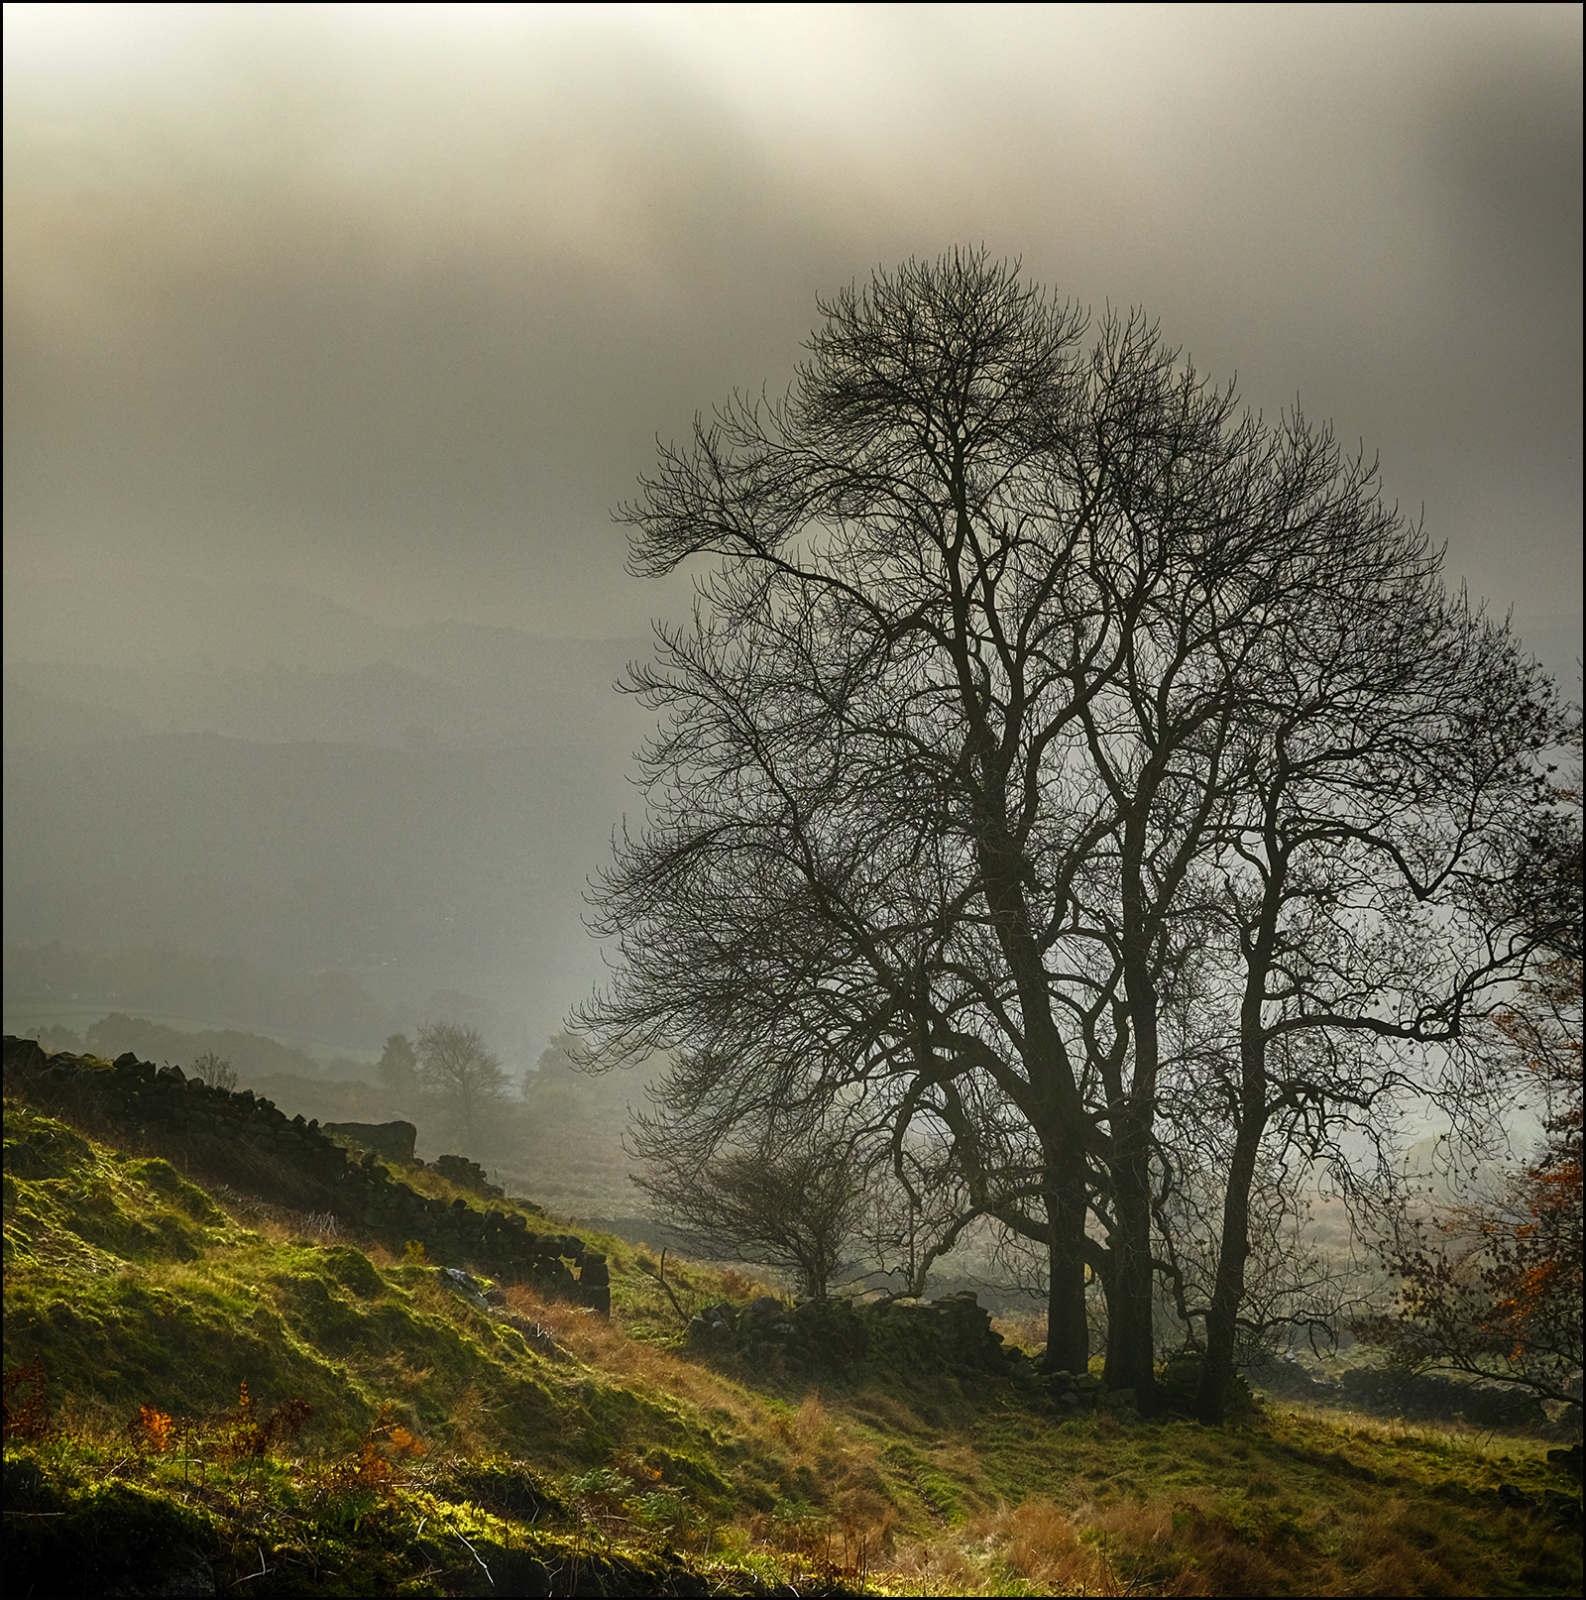 Tree in the morning mist